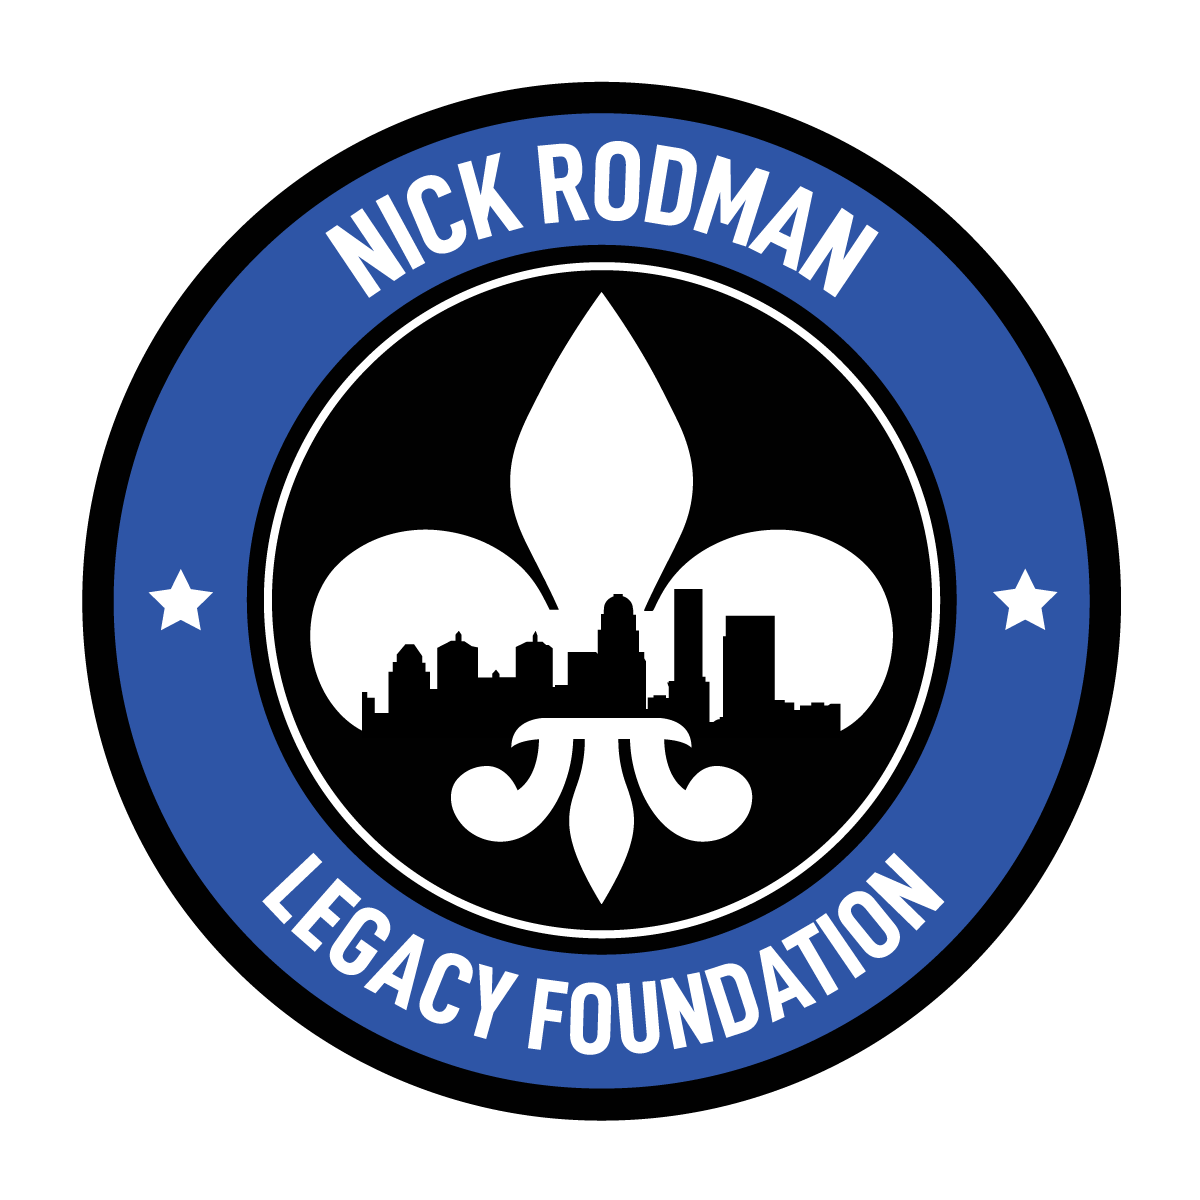 Nick Rodman Legacy Foundation